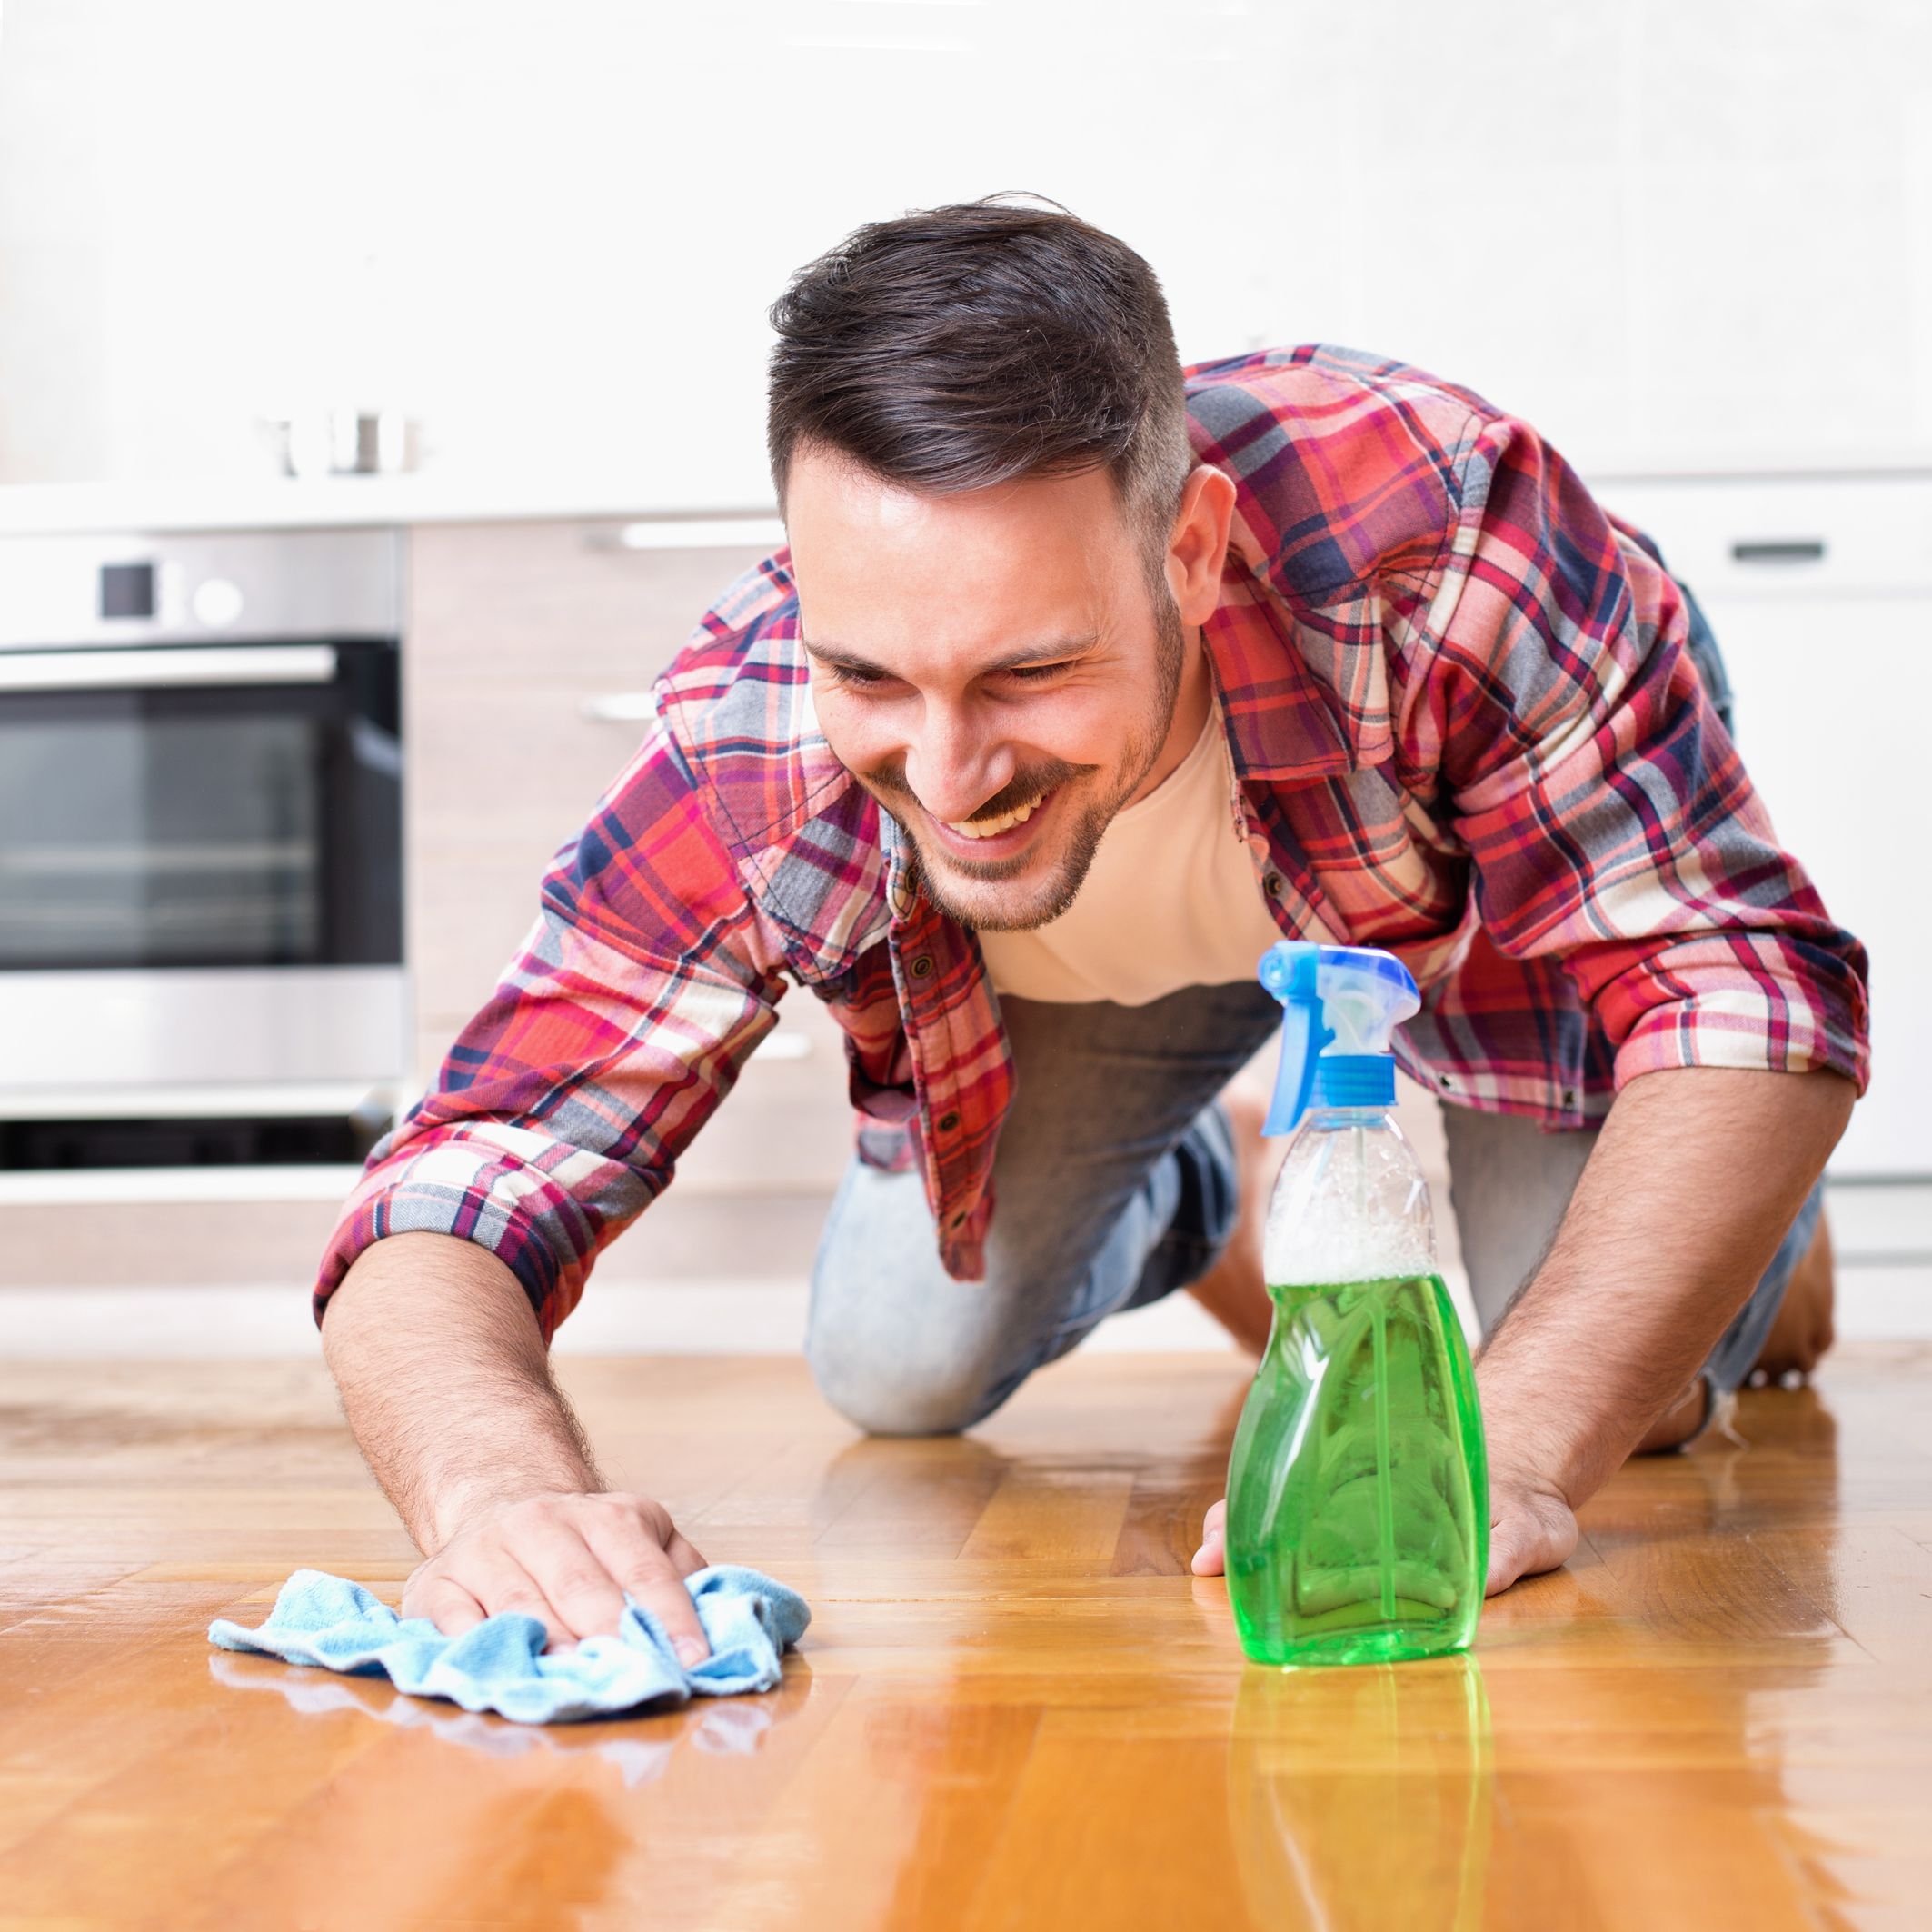 Happy handsome man wiping parquet floor. Husband housekeeping and cleaning concept. Home interior and kitchen in background